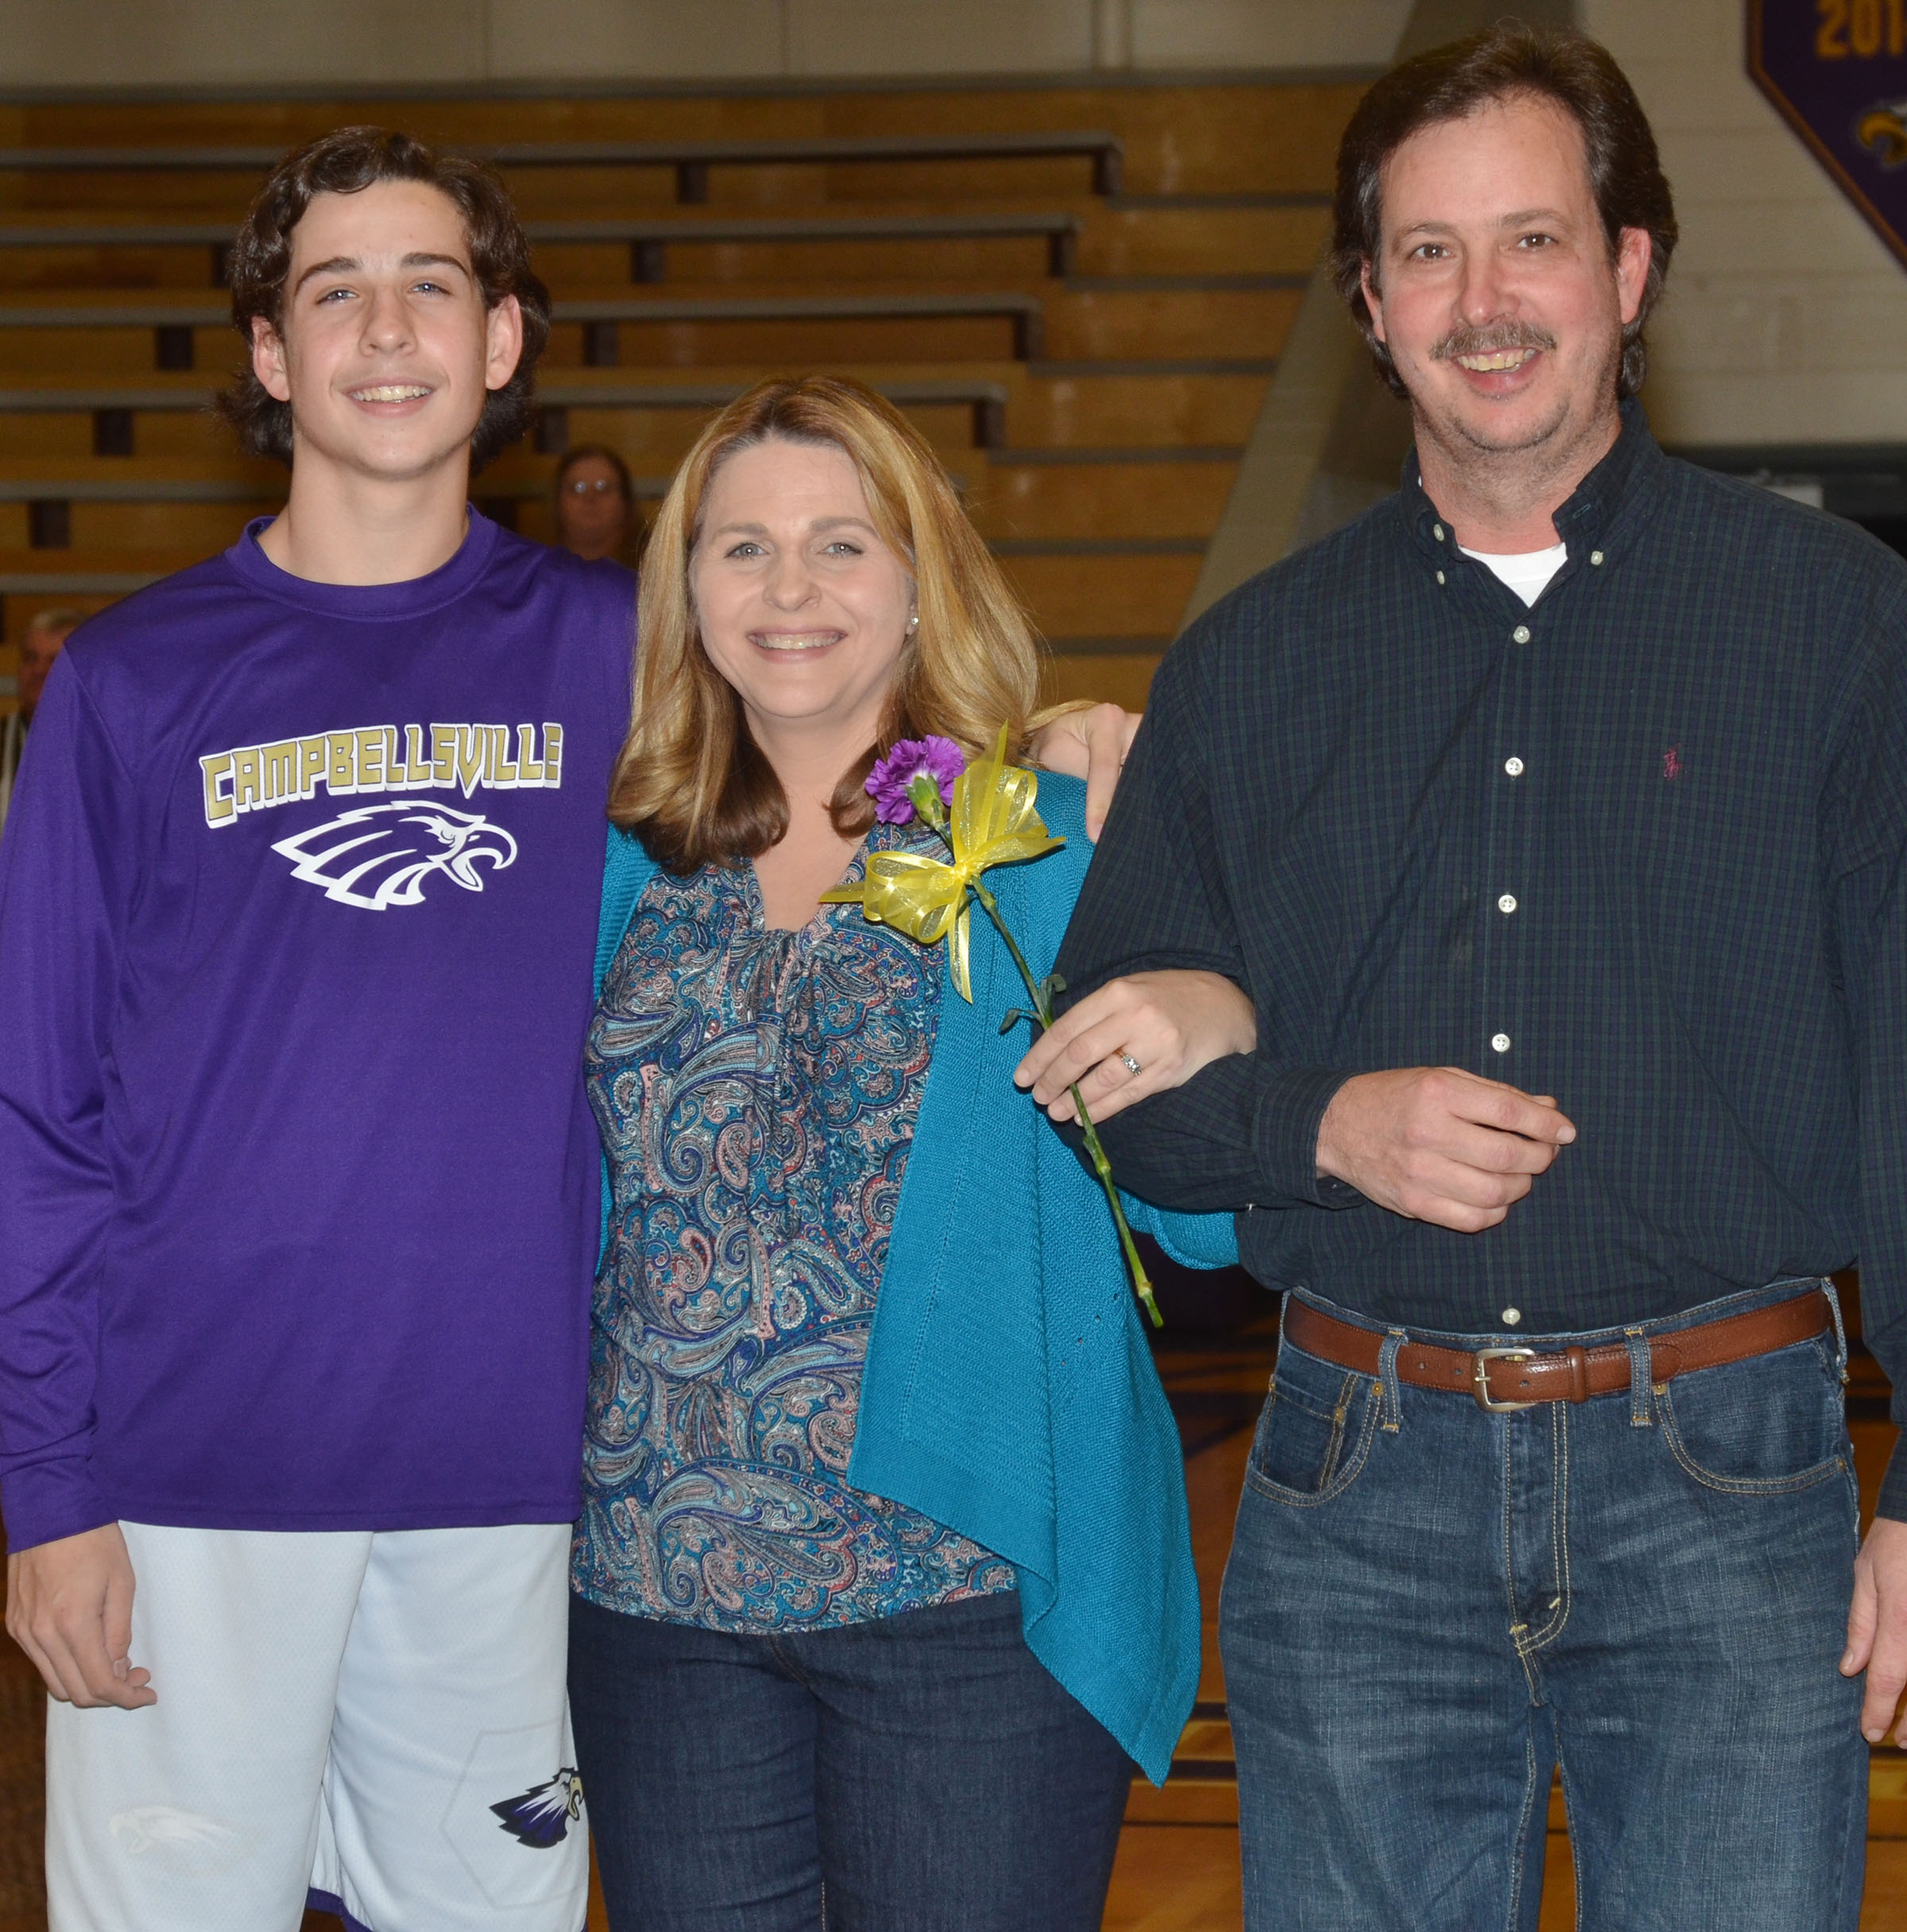 CMS eighth-grader John Orberson is honored. He is pictured with his parents, Sonya and Johnny.